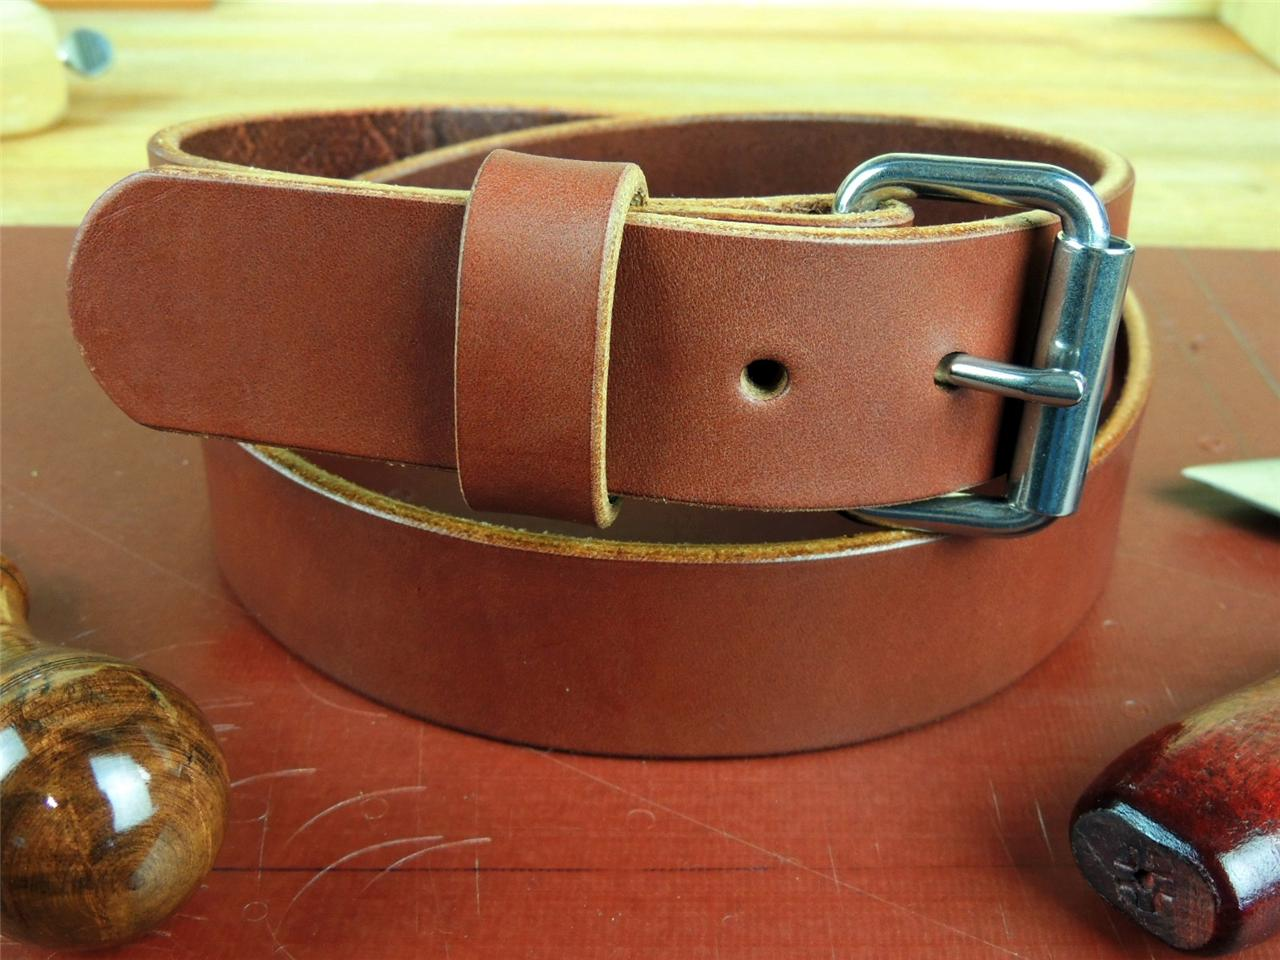 150-1-1-2-HEAVY-DUTY-LEATHER-WORK-GUN-HOLSTER-BELT-AMISH-HANDMADE-1-5